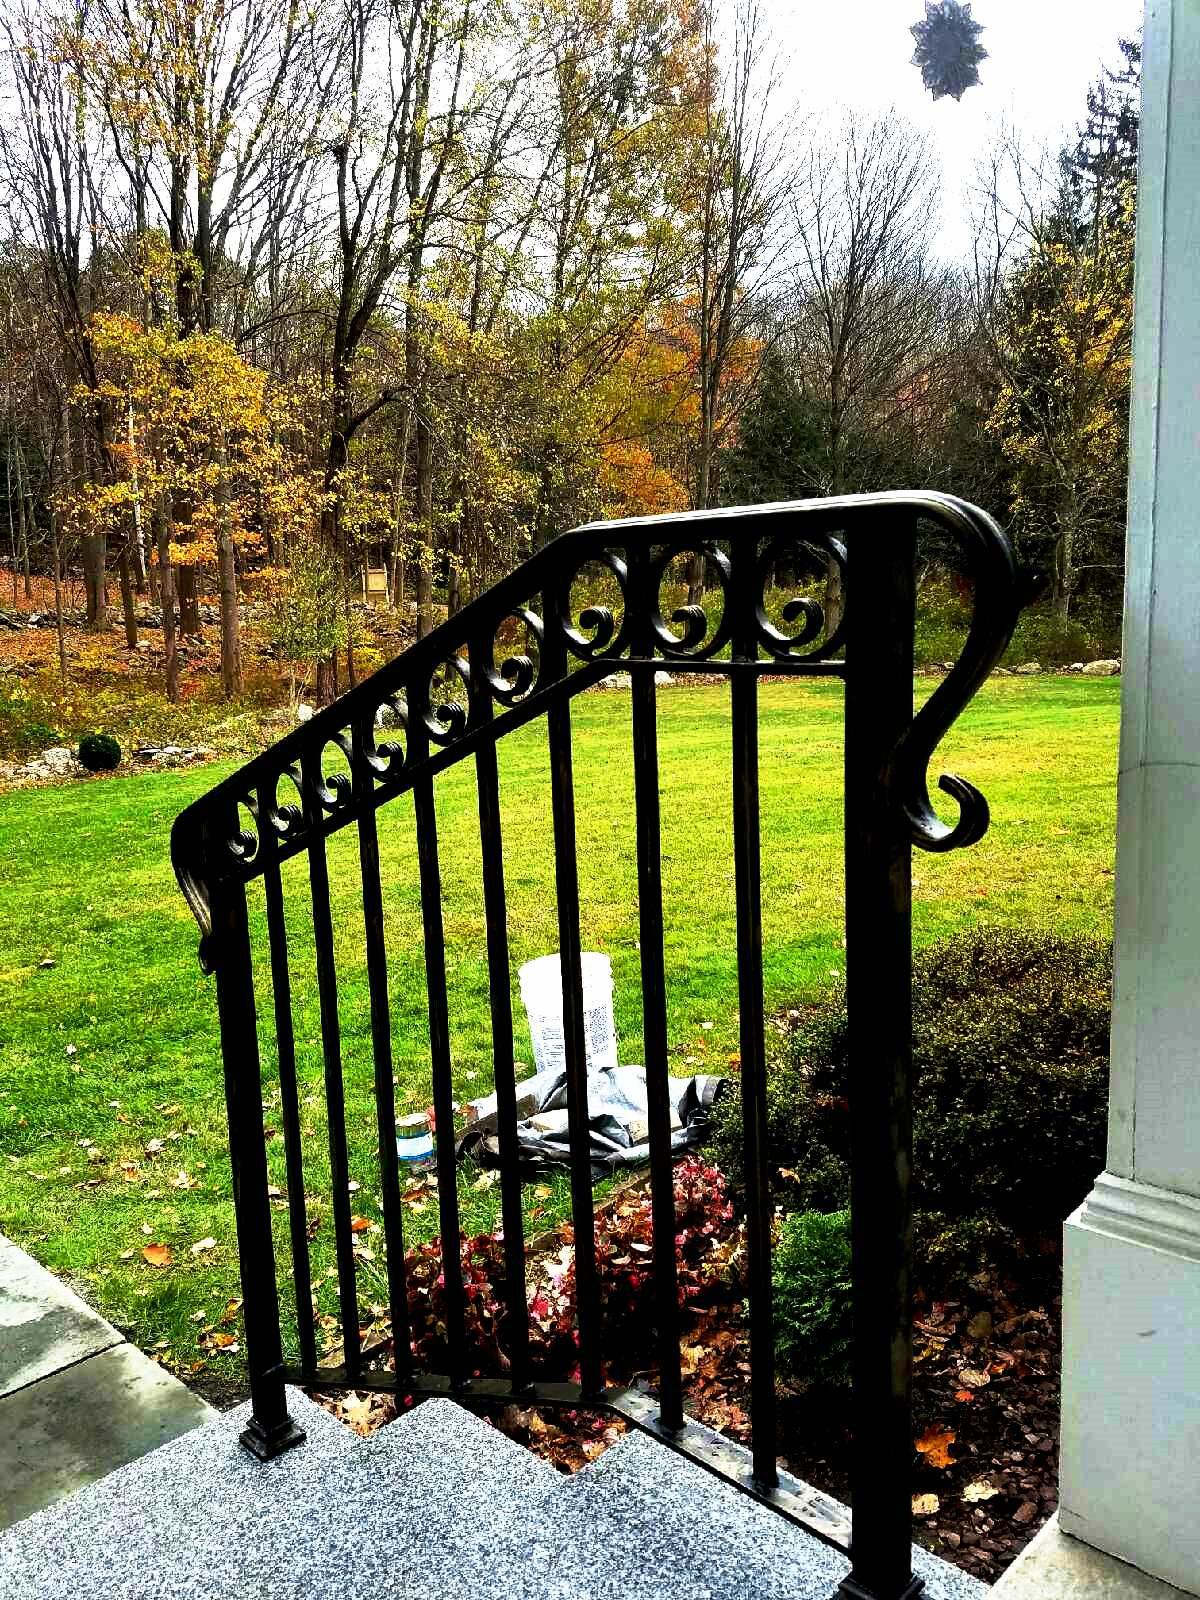 3 Rail Wrought Iron Railing With Decorative Fishtail Rings With